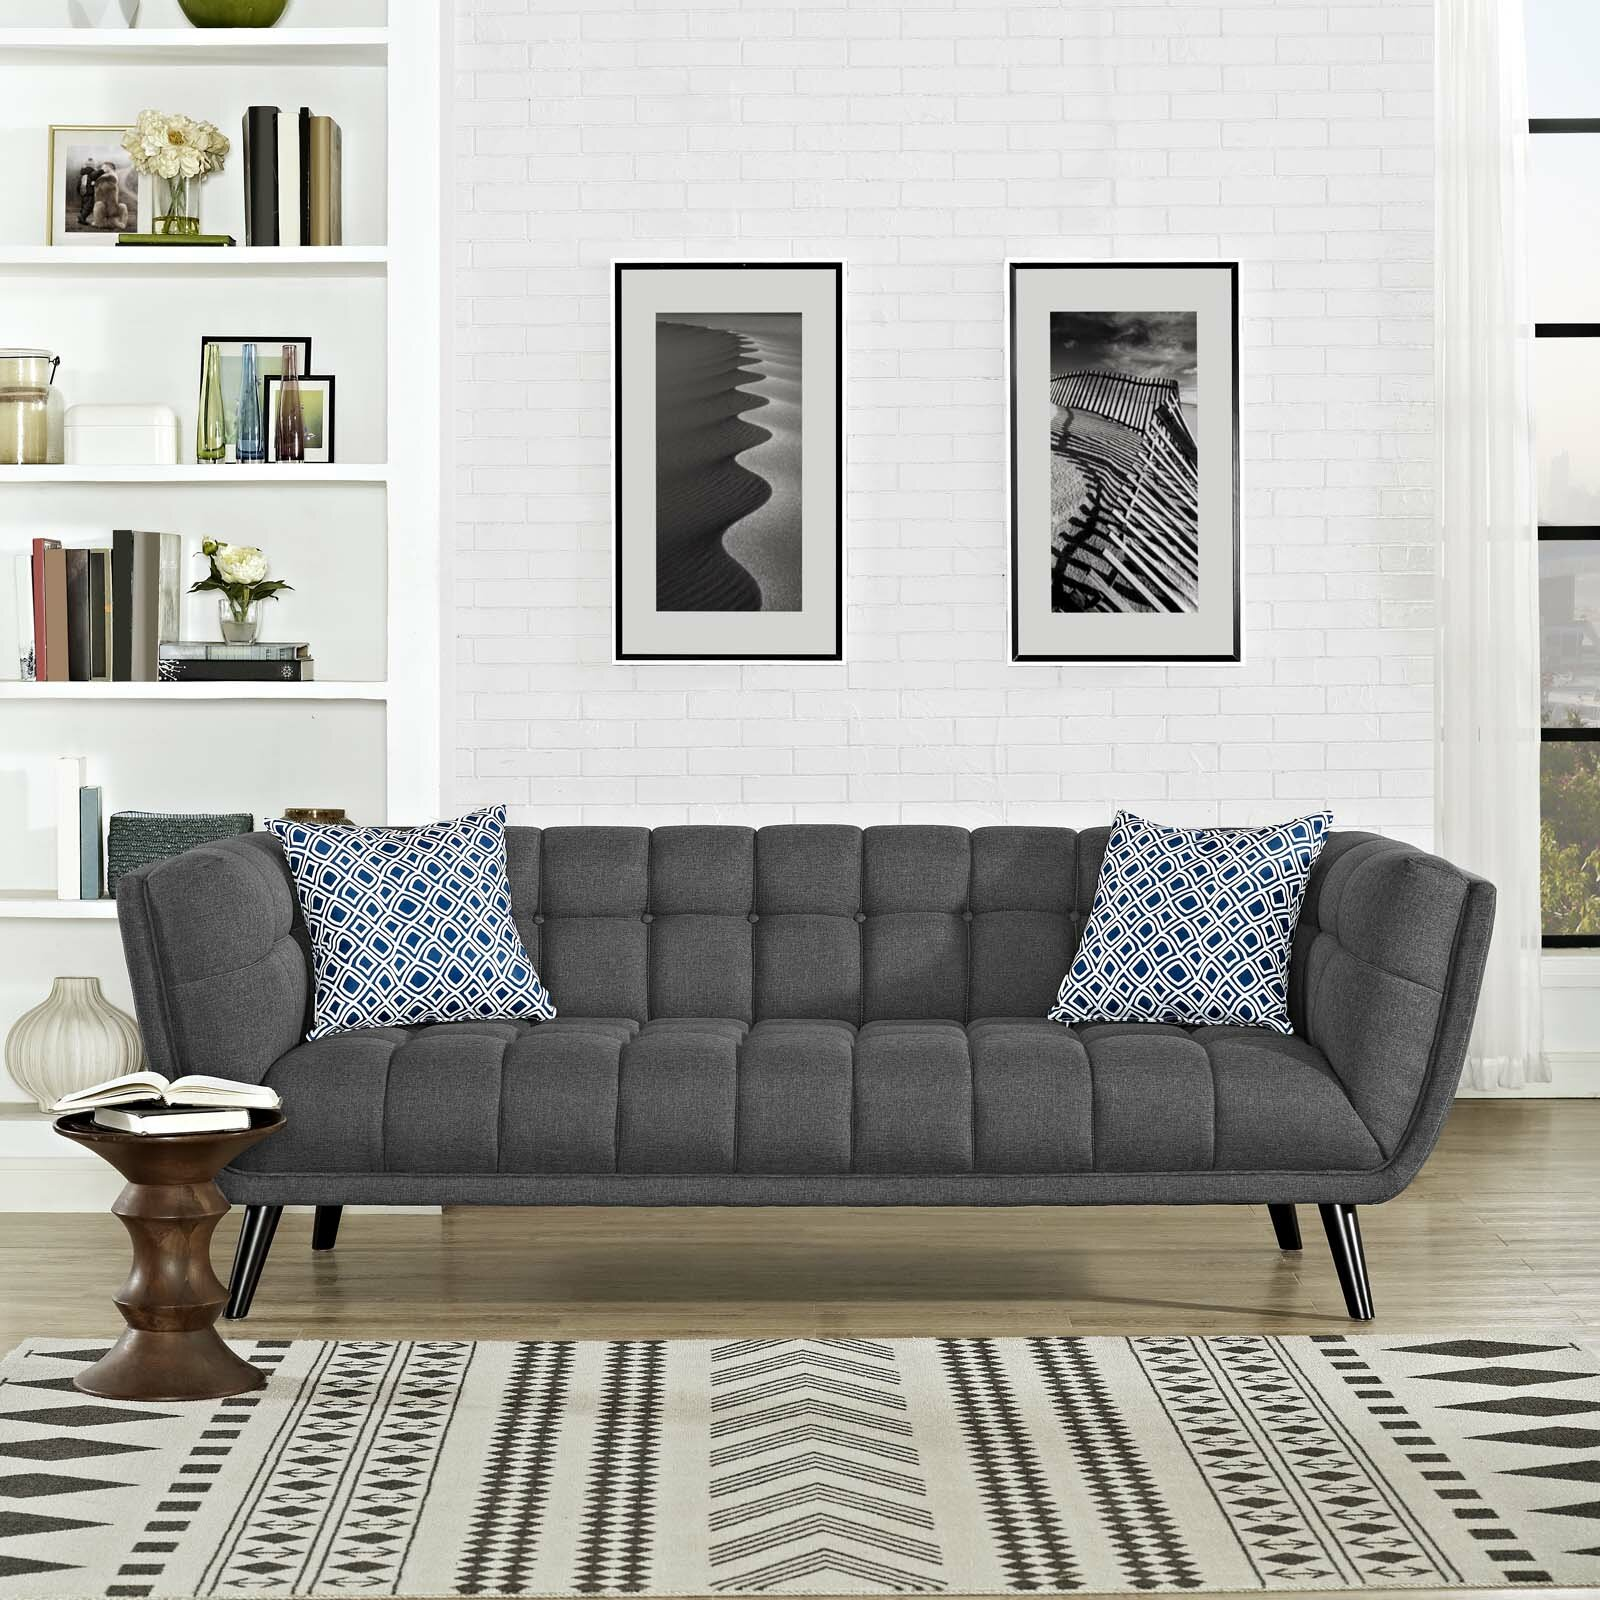 Brayden Studio Seneca Upholstered Chesterfield Sofa